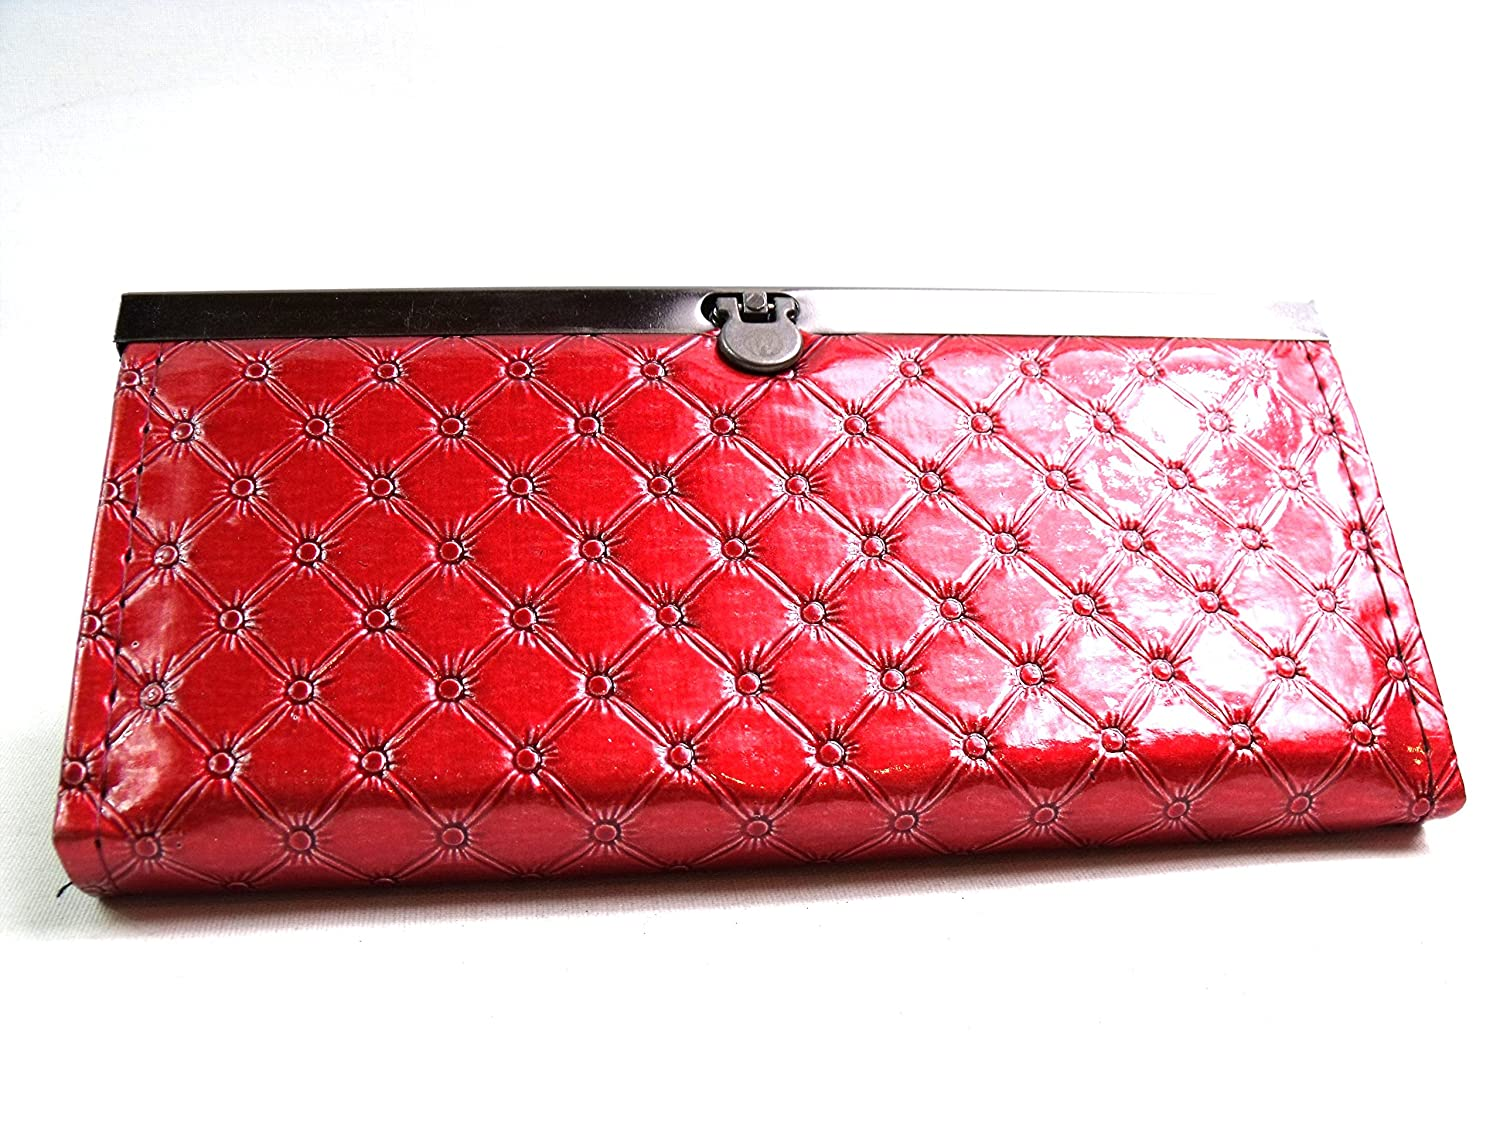 The Leather Emporium Adult Pu Leather Clutch